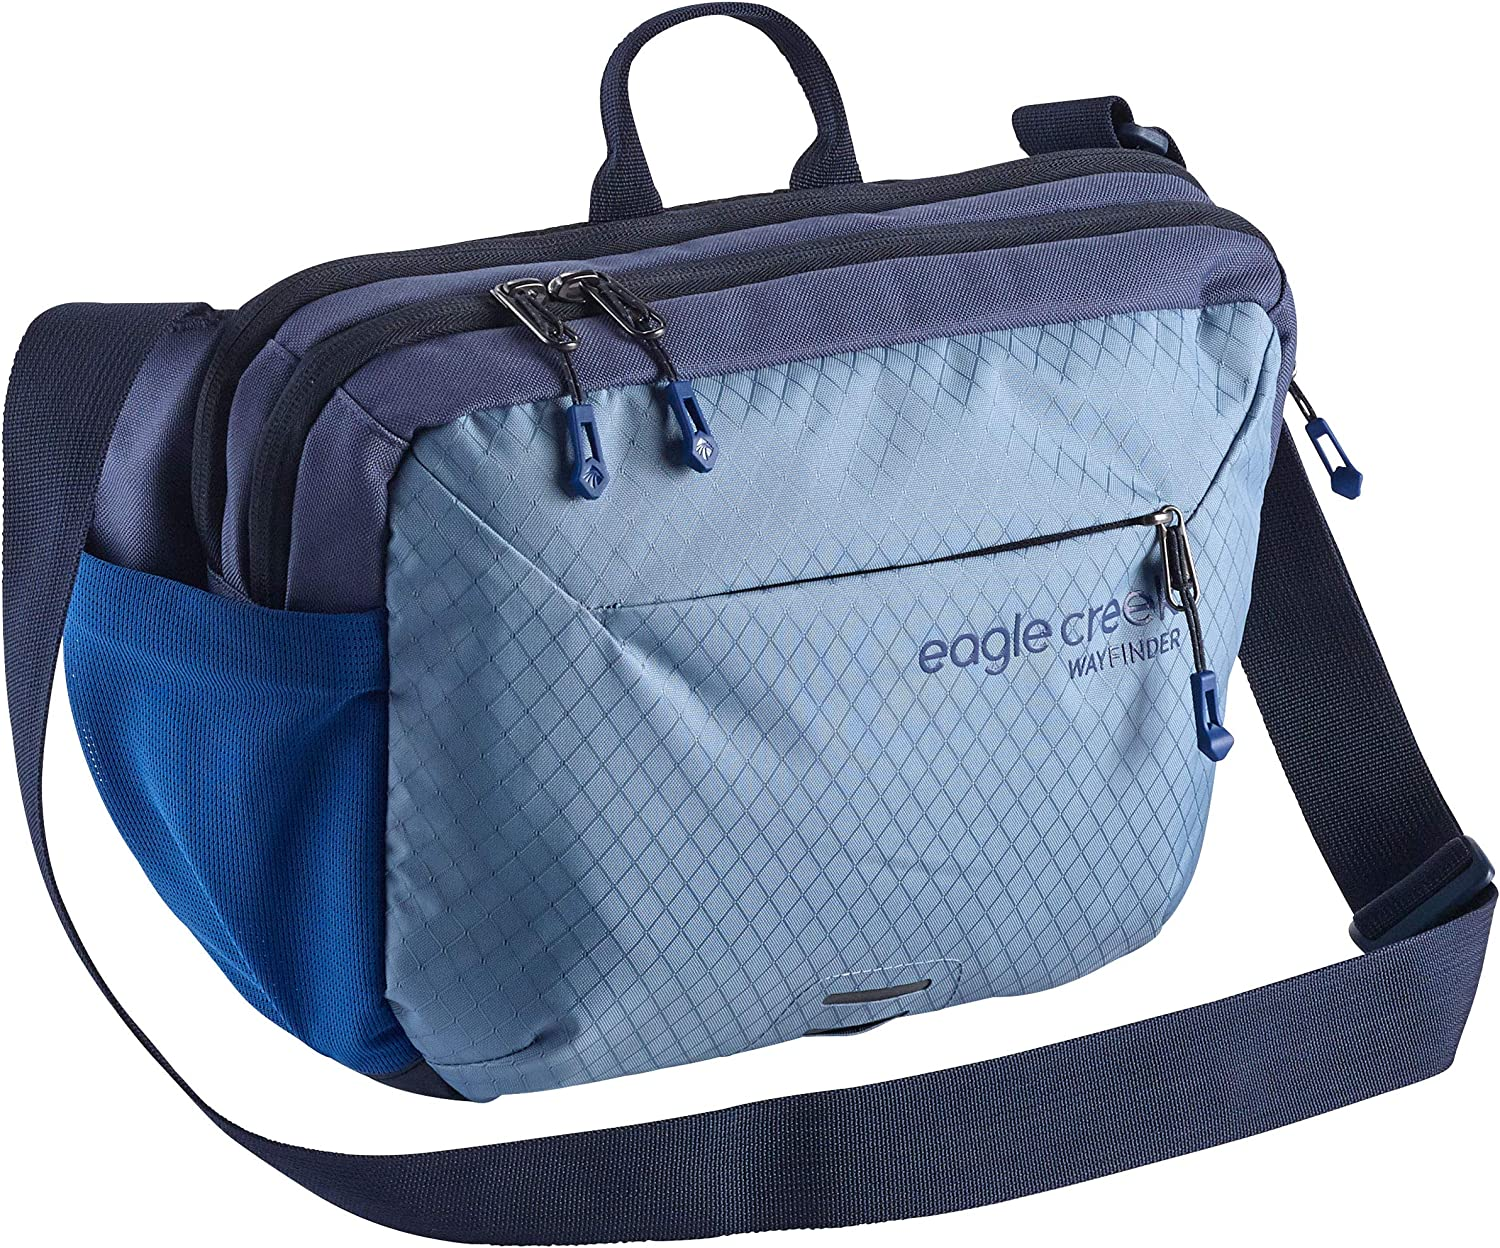 eagle creek crossbody bag blue